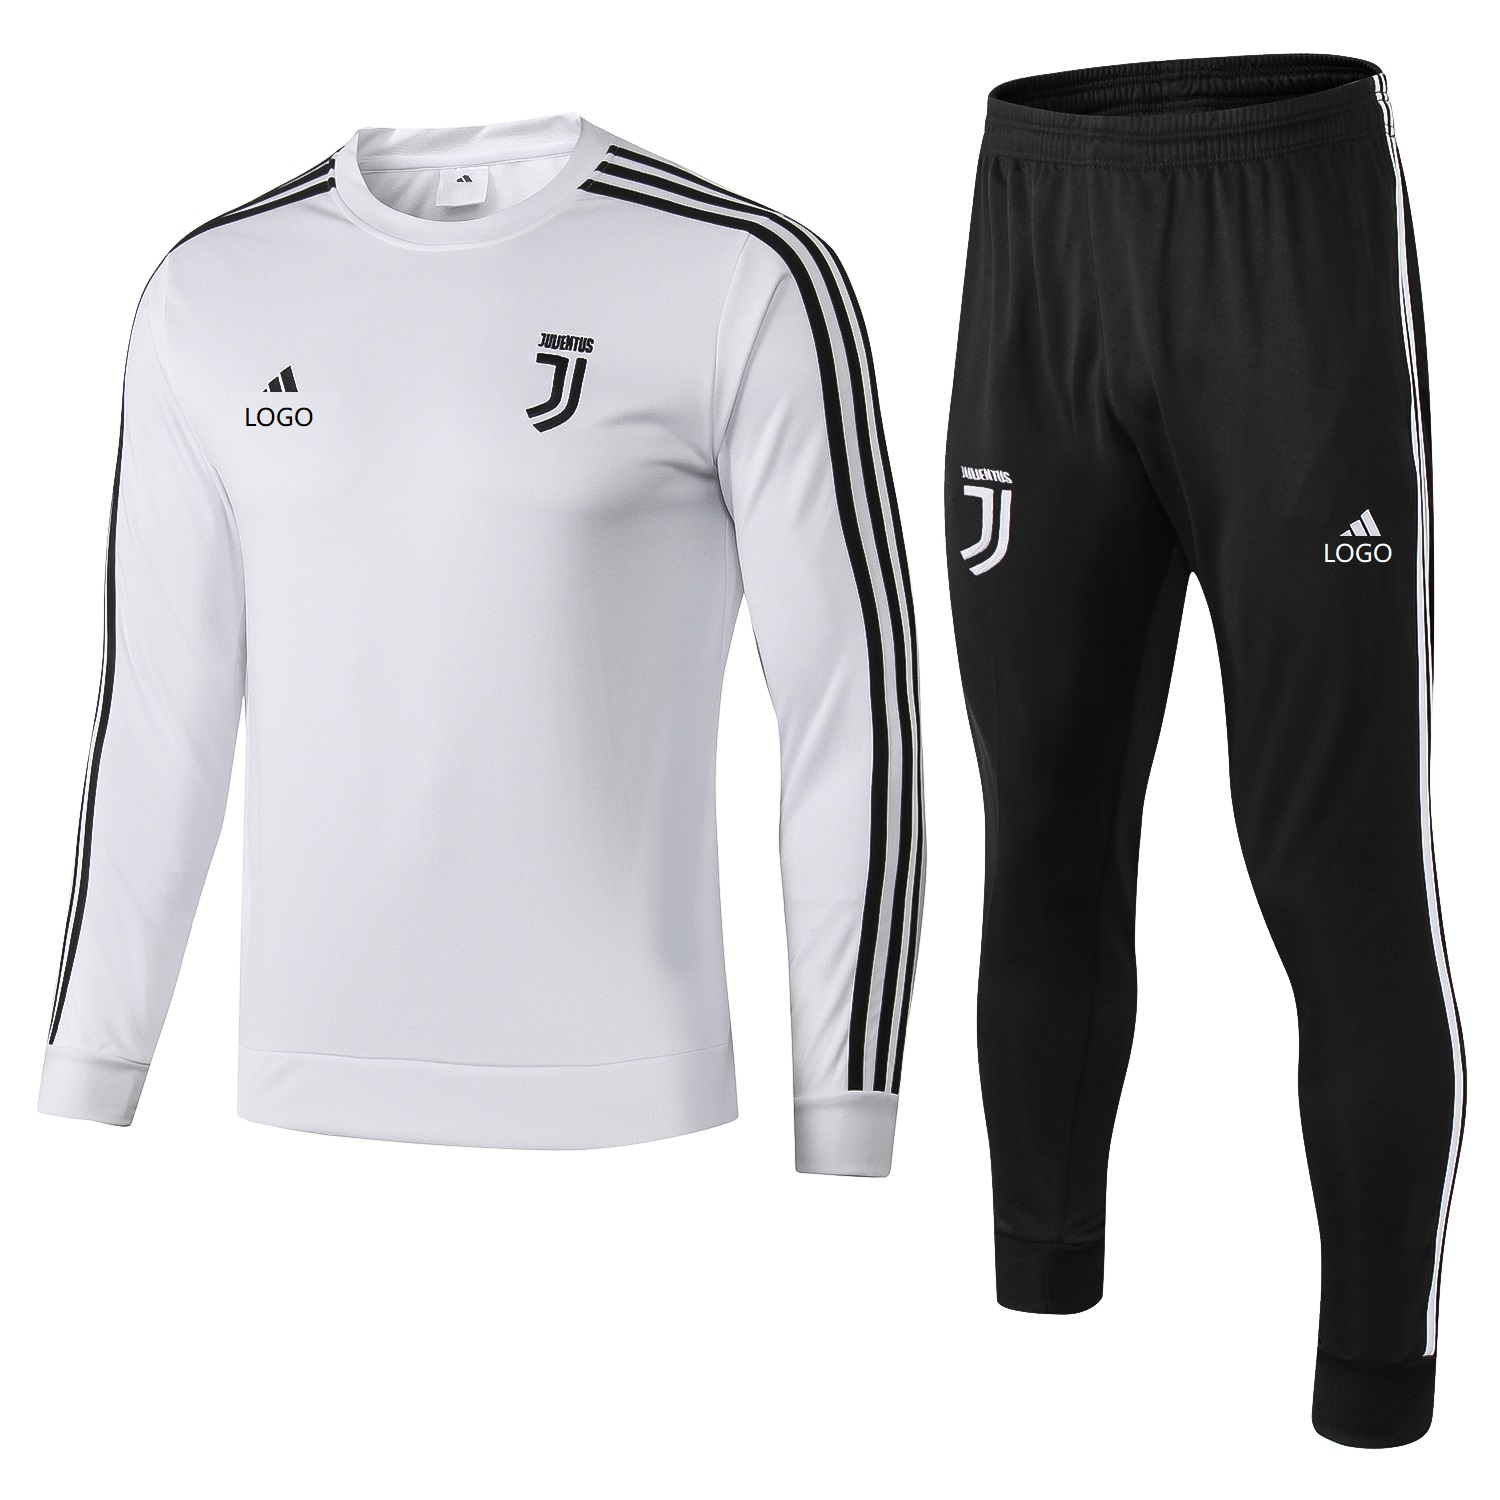 9b70ed7decd Soccer Jerseys,Basketball Jerseys,Sports Shirts,Soccer Socks,Sports Wear